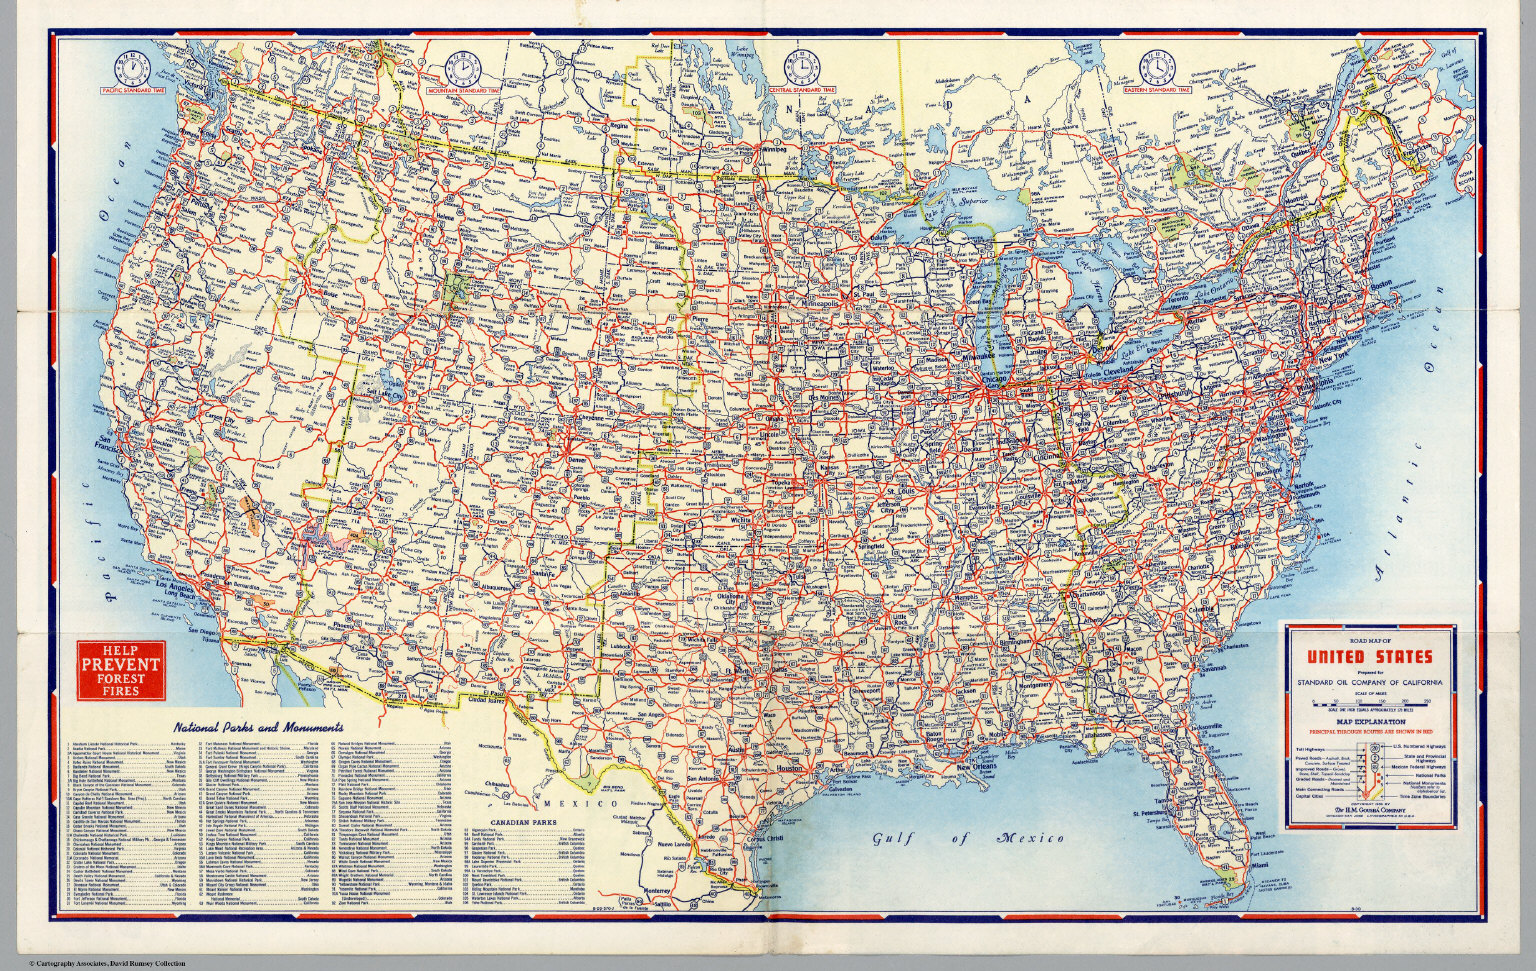 united states road map with cities Road Map of United States   David Rumsey Historical Map Collection